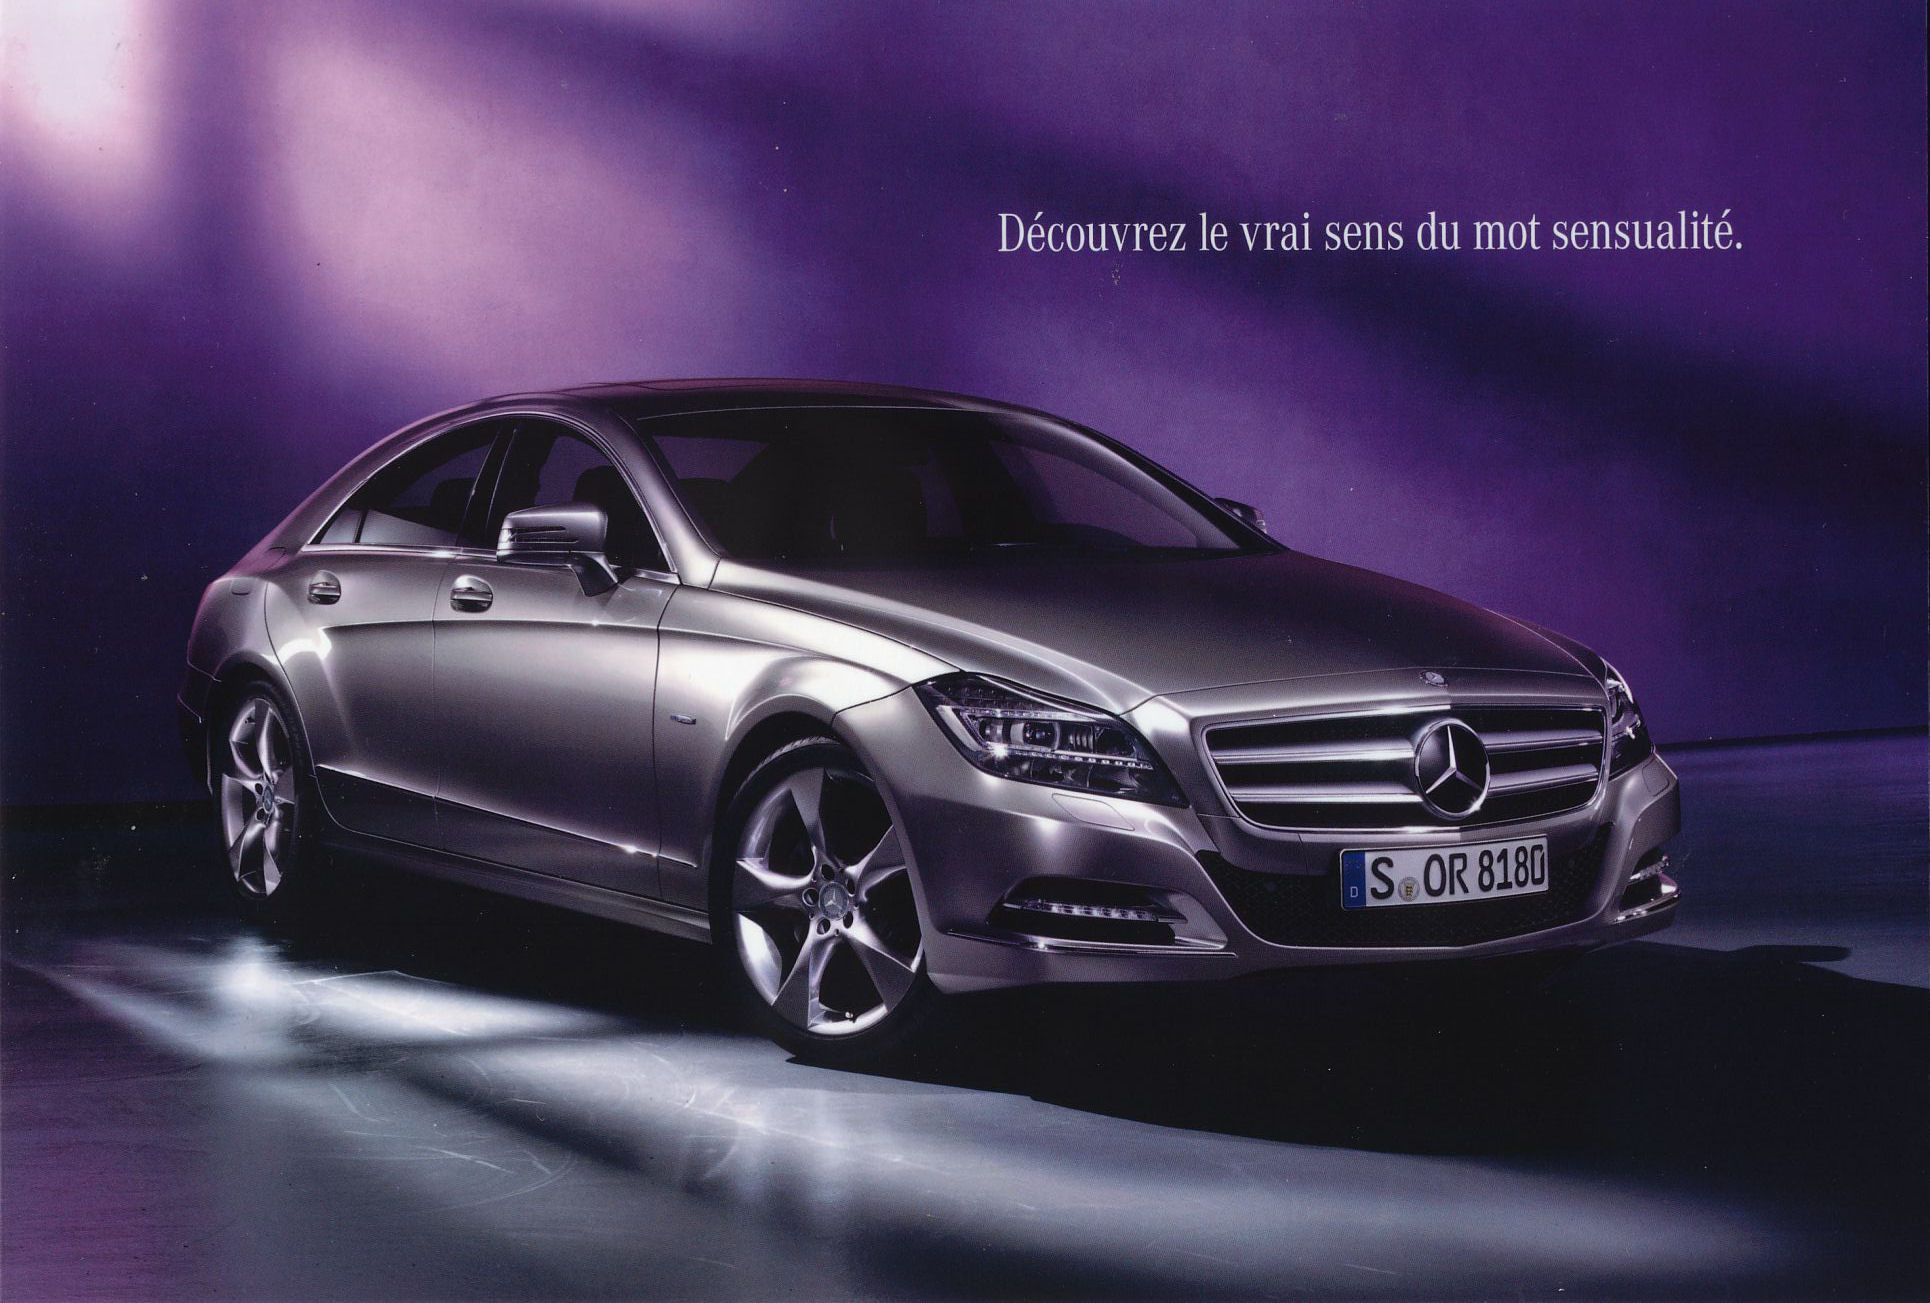 2010 mercedes cls brochure for 2010 mercedes benz cls